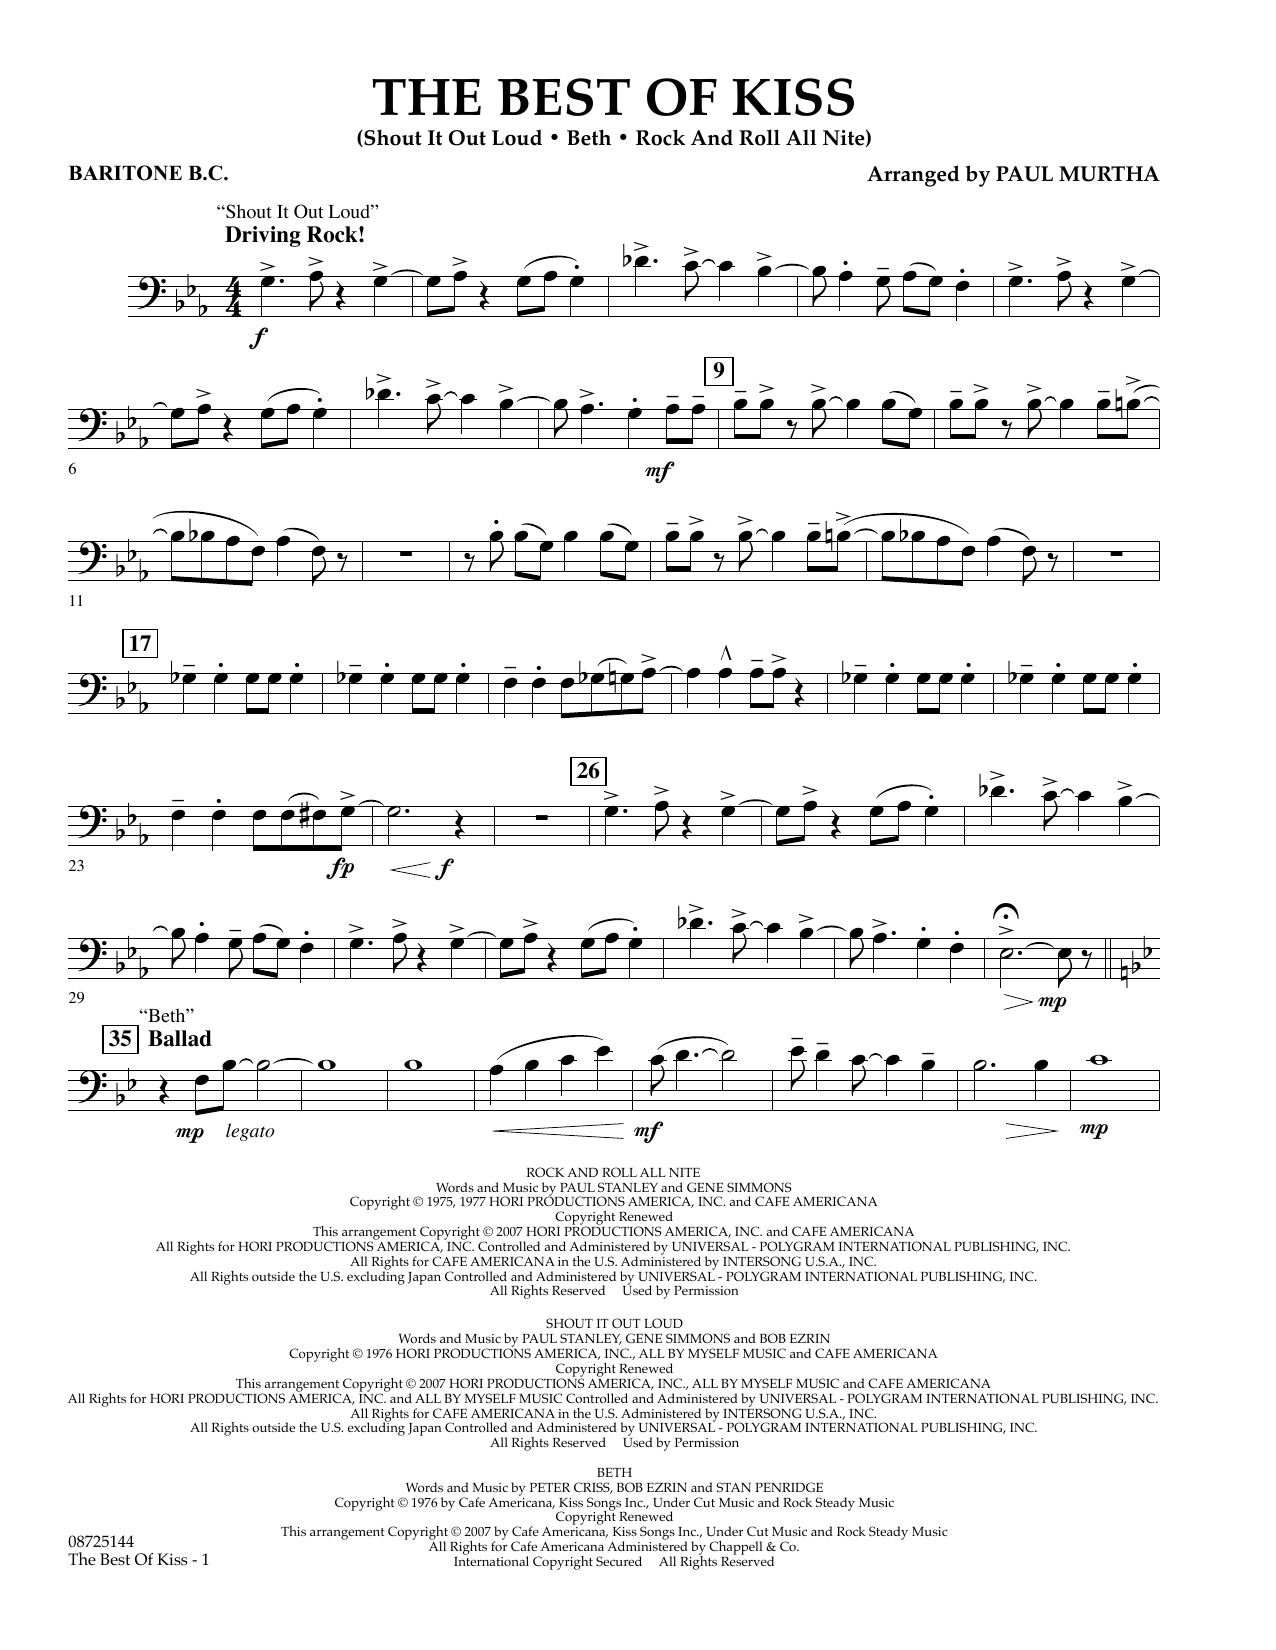 Paul Murtha The Best of Kiss - Baritone B.C. sheet music preview music notes and score for Concert Band including 2 page(s)